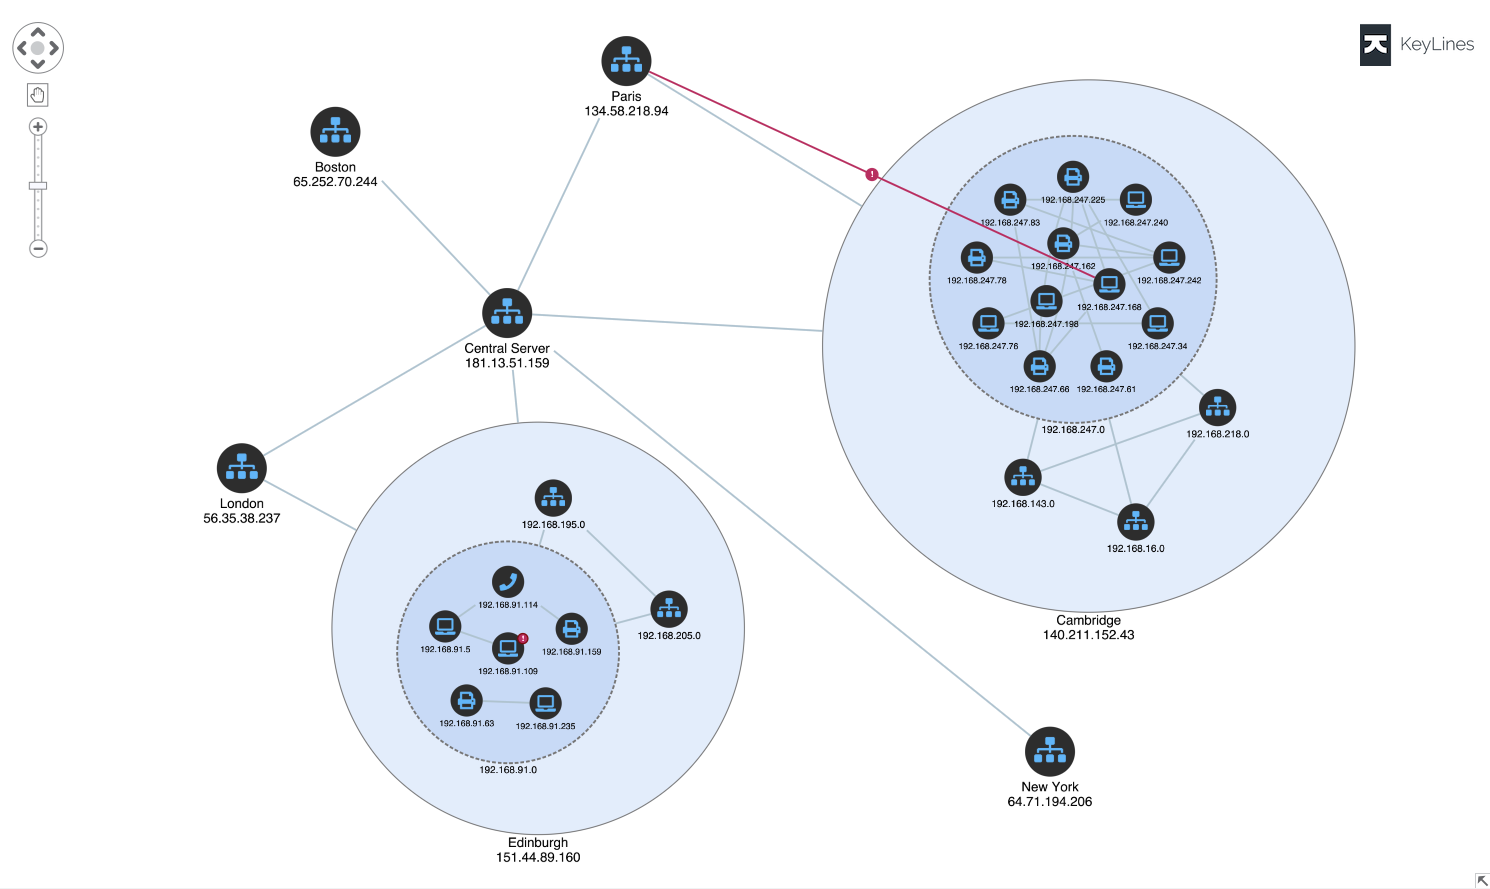 visualizing root cause analysis with network mapping software